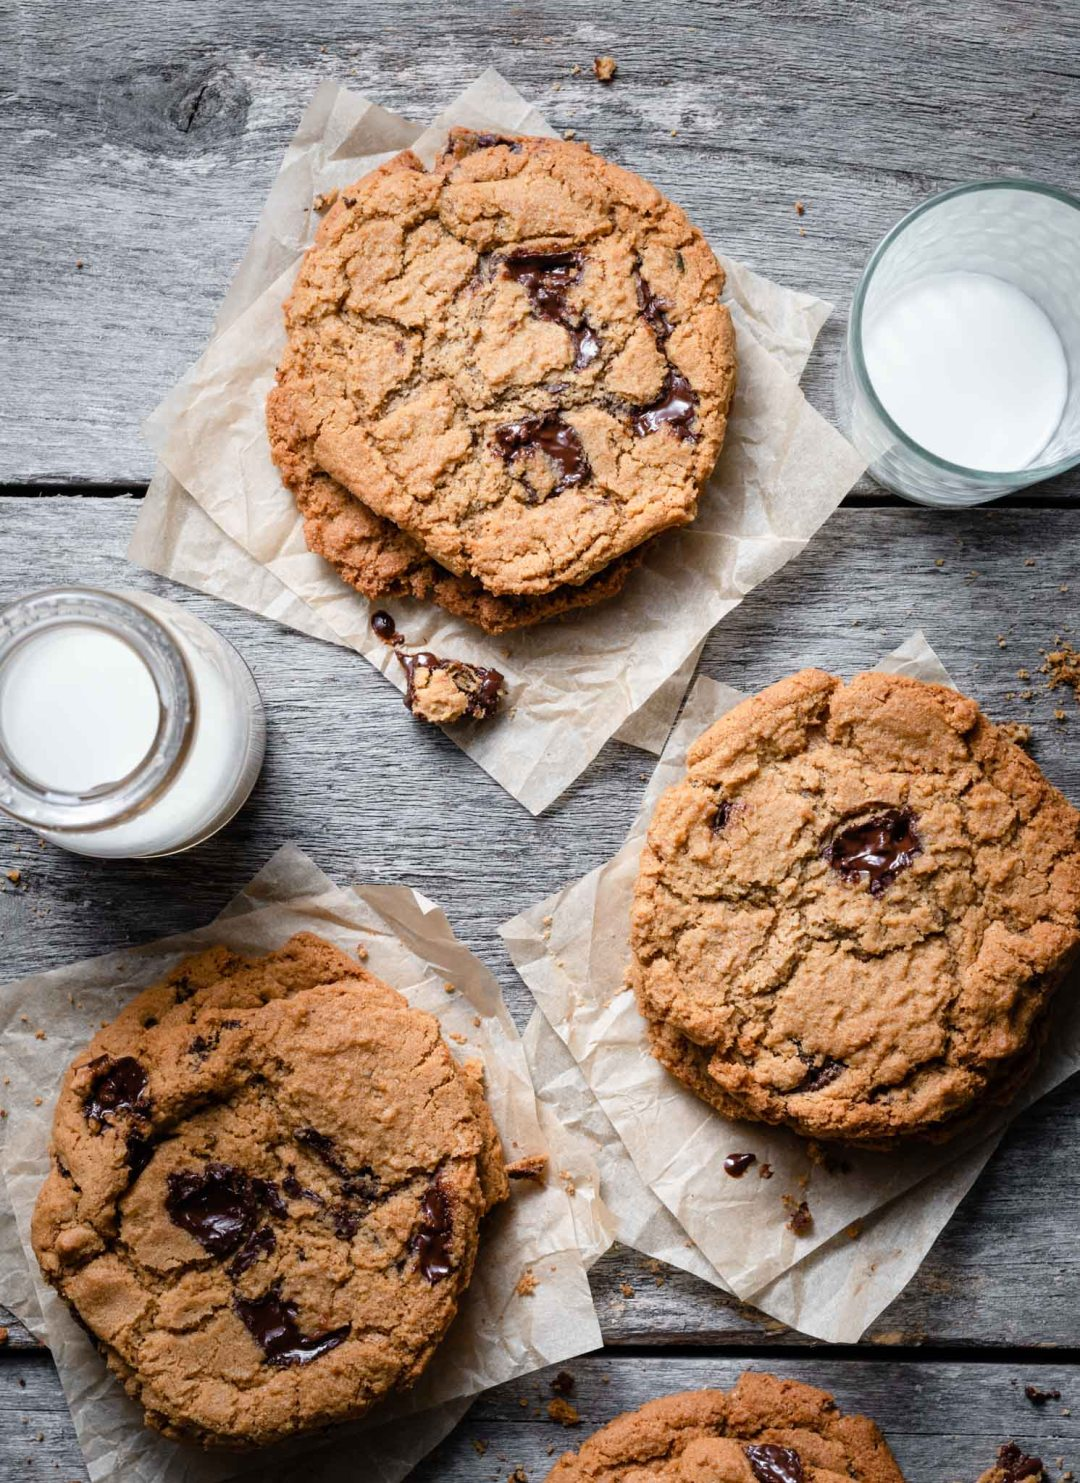 Chocolate Chunk Cookies stacked with a glass of milk.